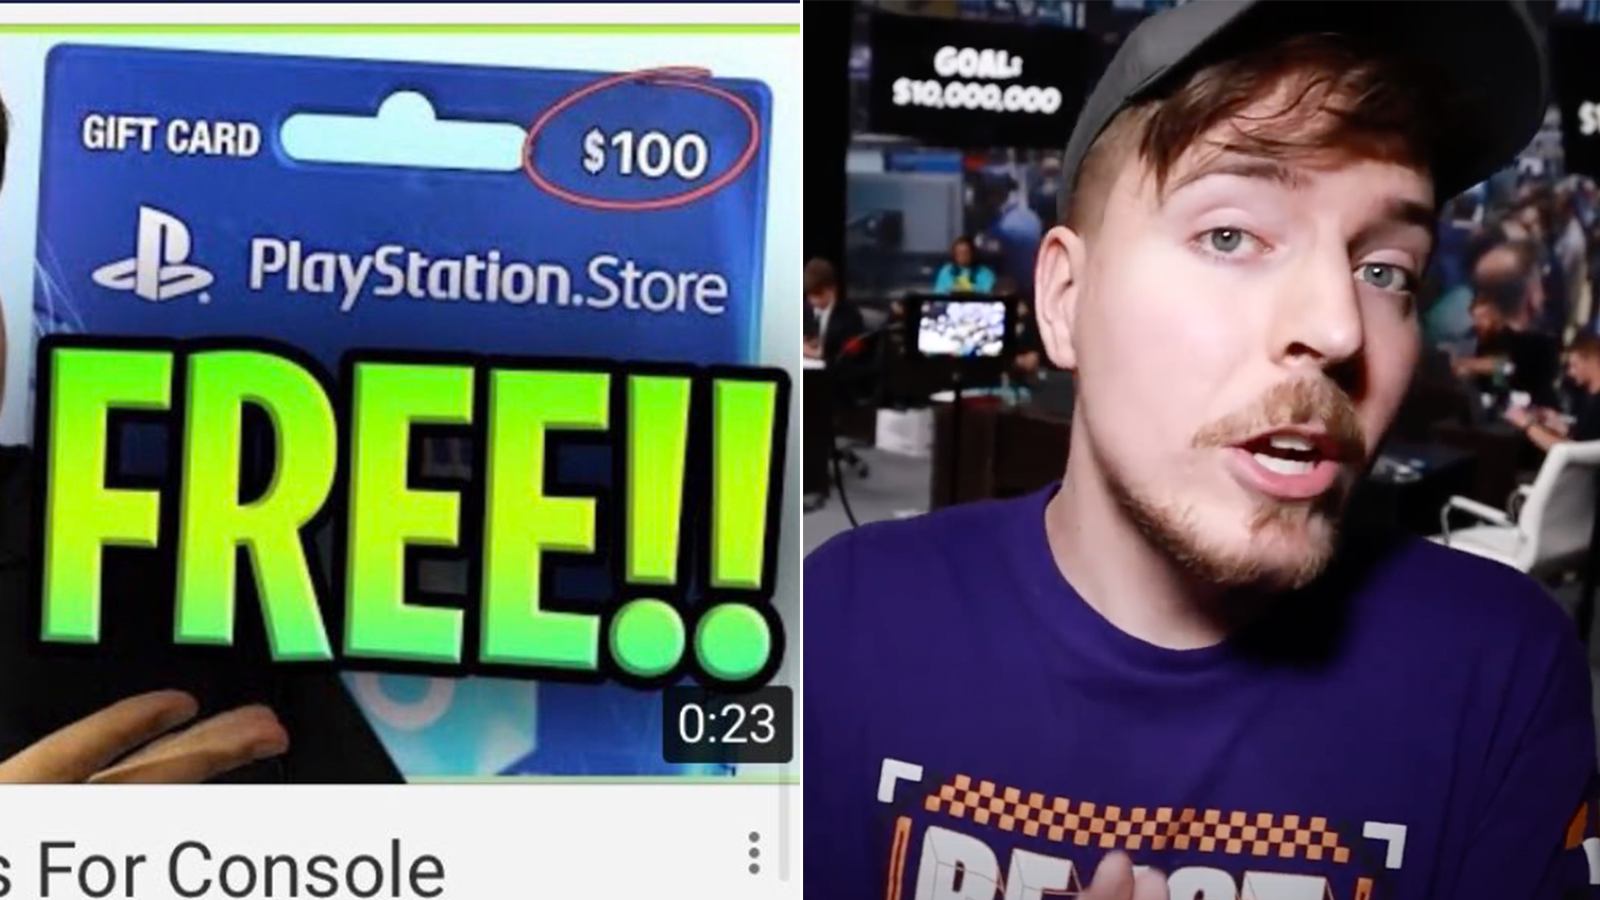 Mr Beast warns of scam on YouTube